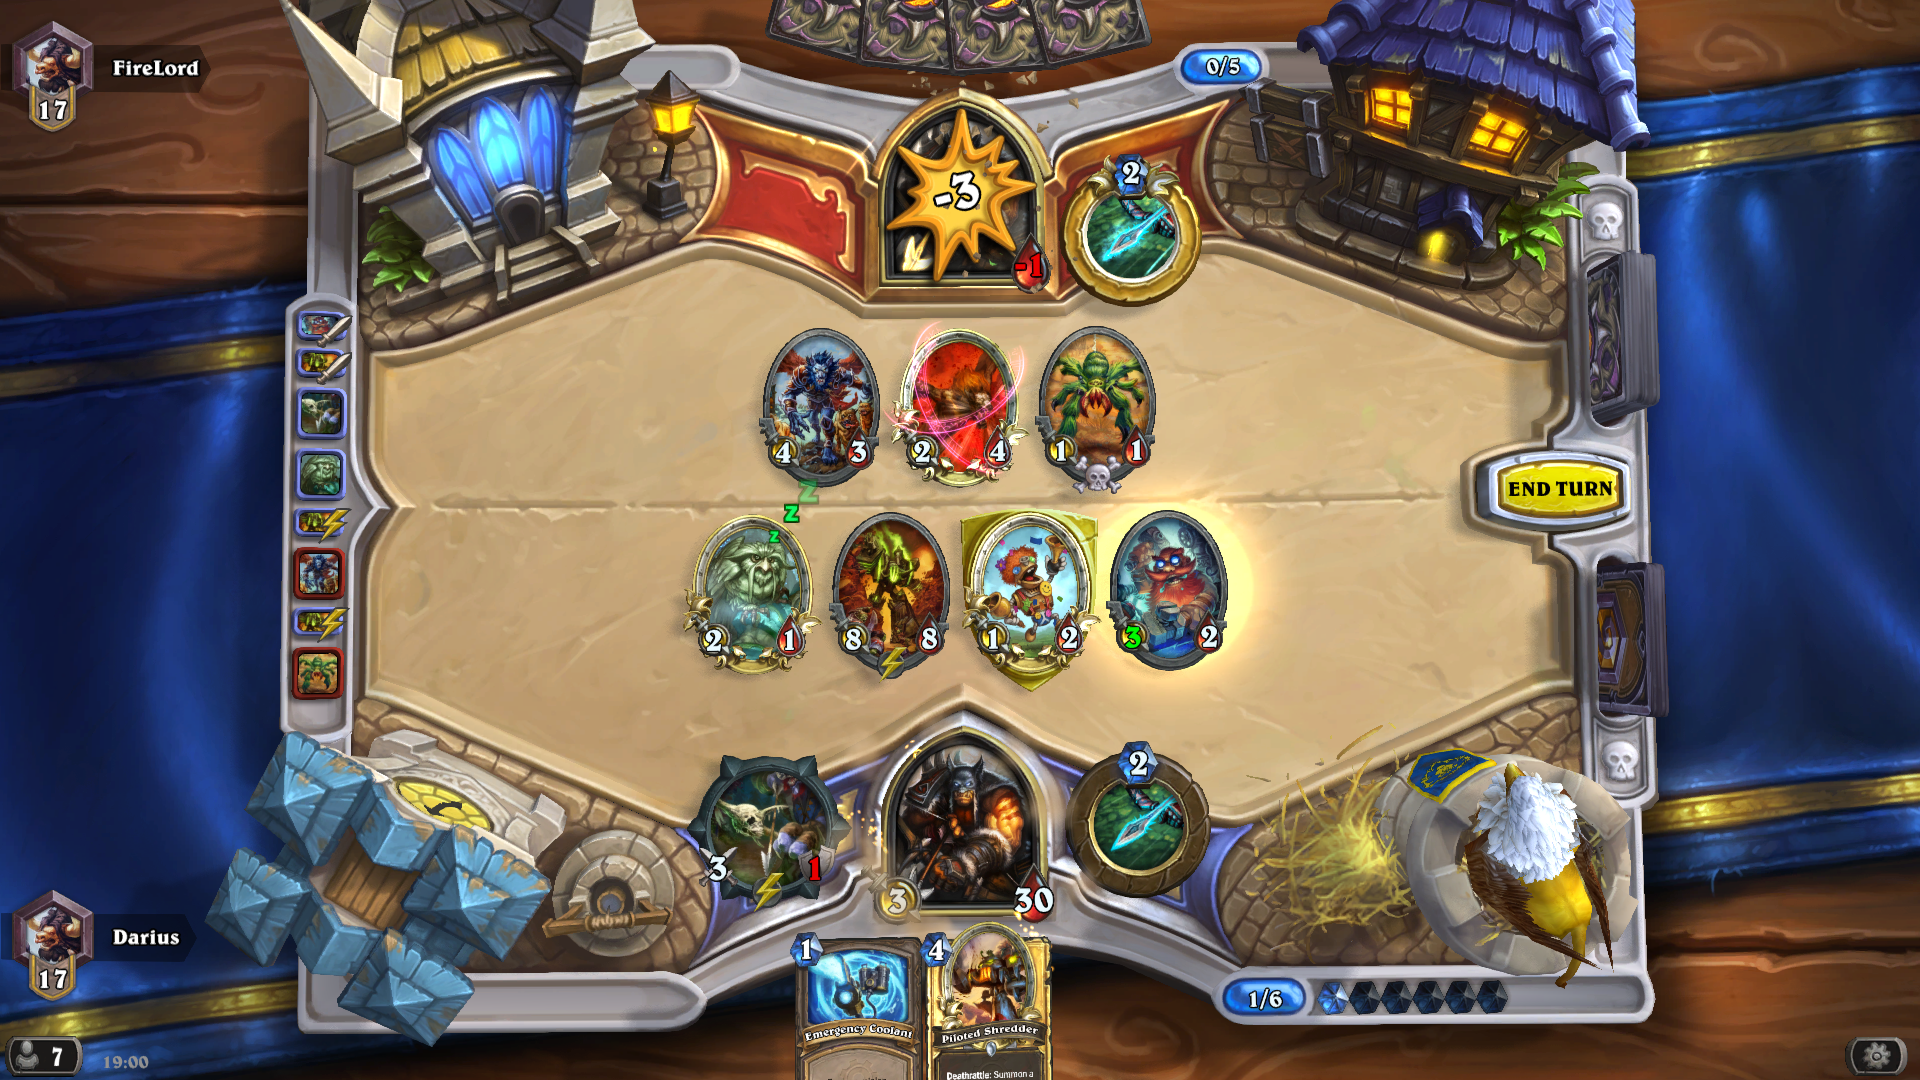 Hearthstone Screenshot 08-04-15 19.00.43.png